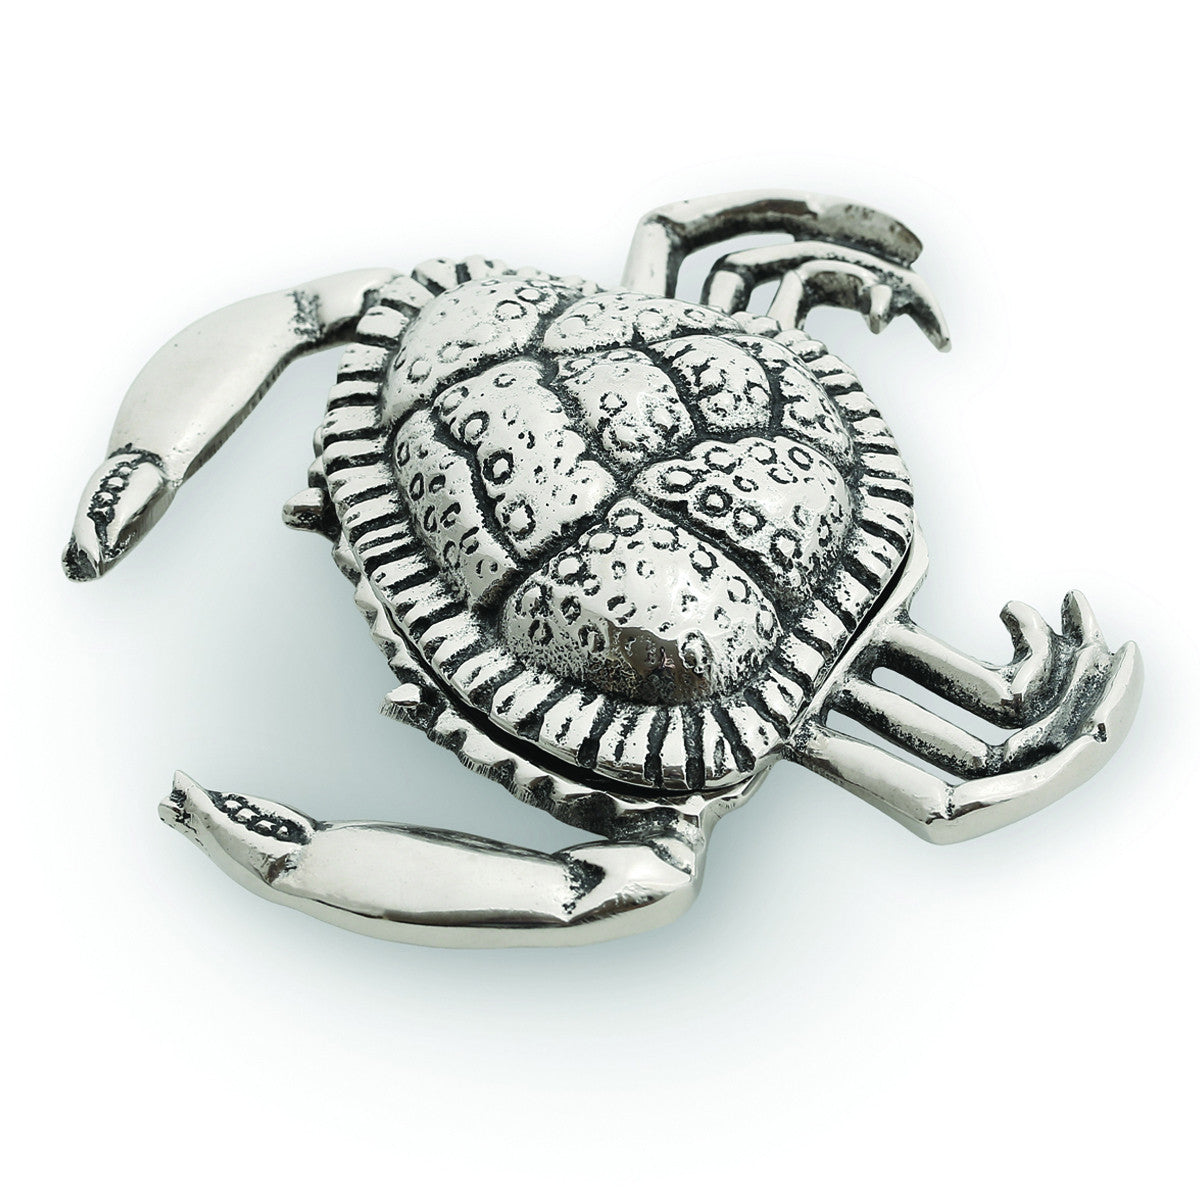 Ocean Crab Metal Jar w/ Lid